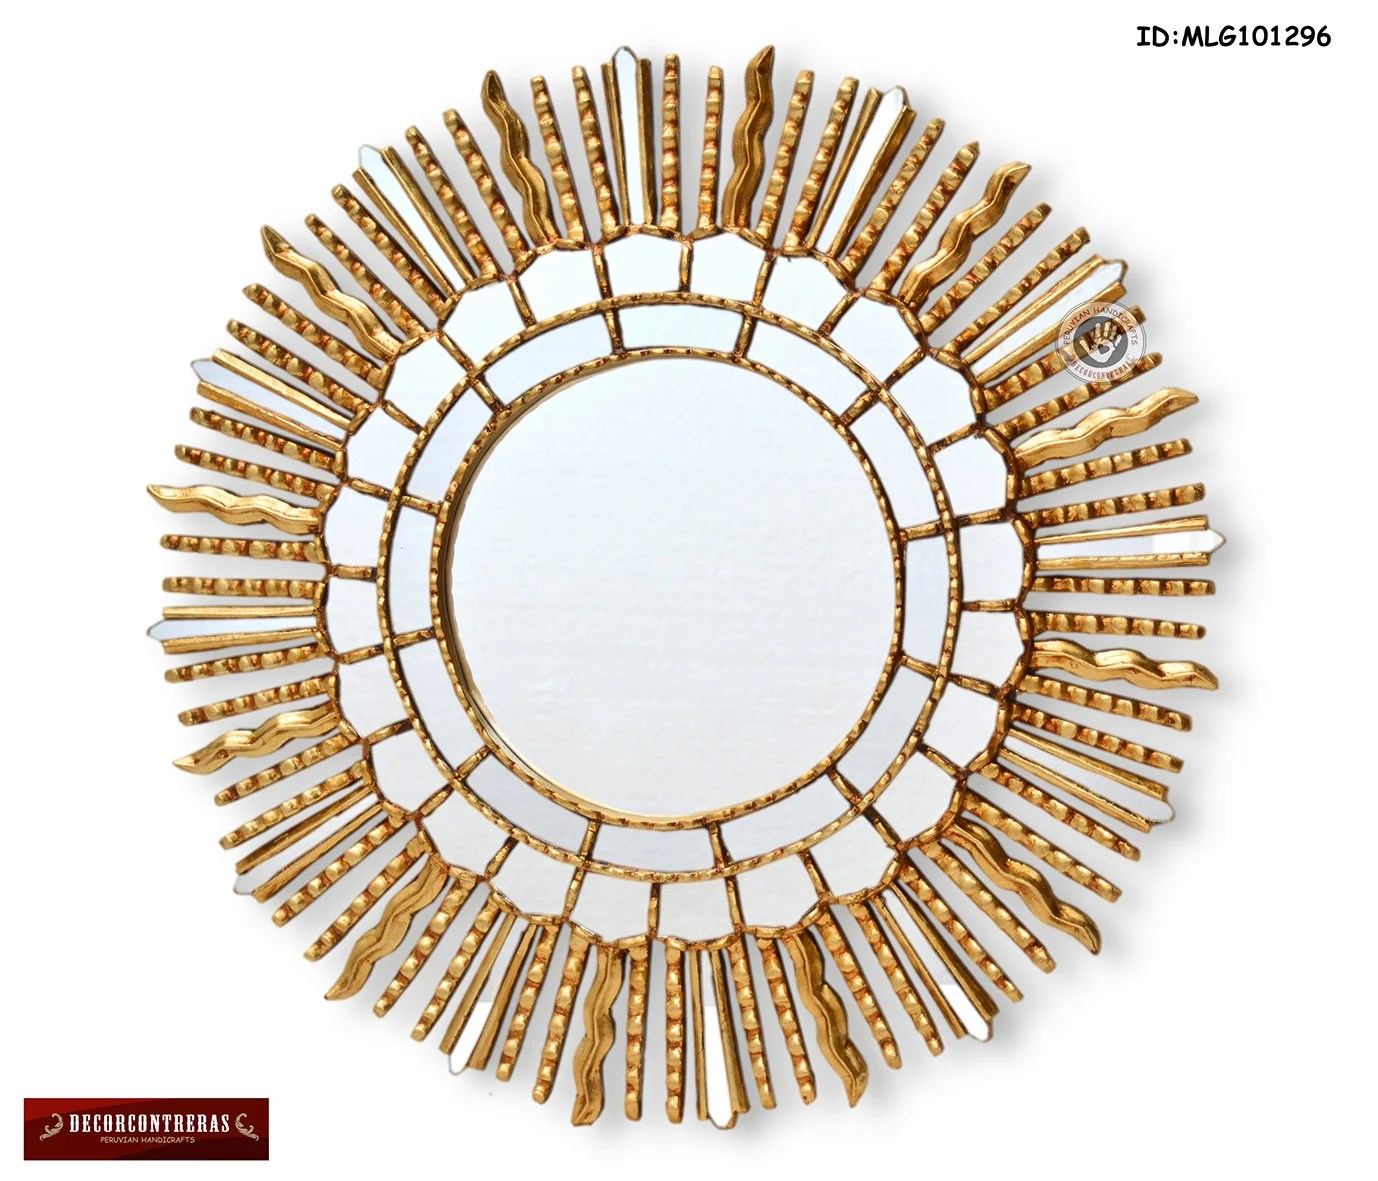 Sun Shaped Mirrors Peruvian Gold Wall Mirror Cuzco Style 23 6in Randiant Sun Decorative Wall Mirror Sunburst Mirrors Home Decor Ornate Mirrors Peru